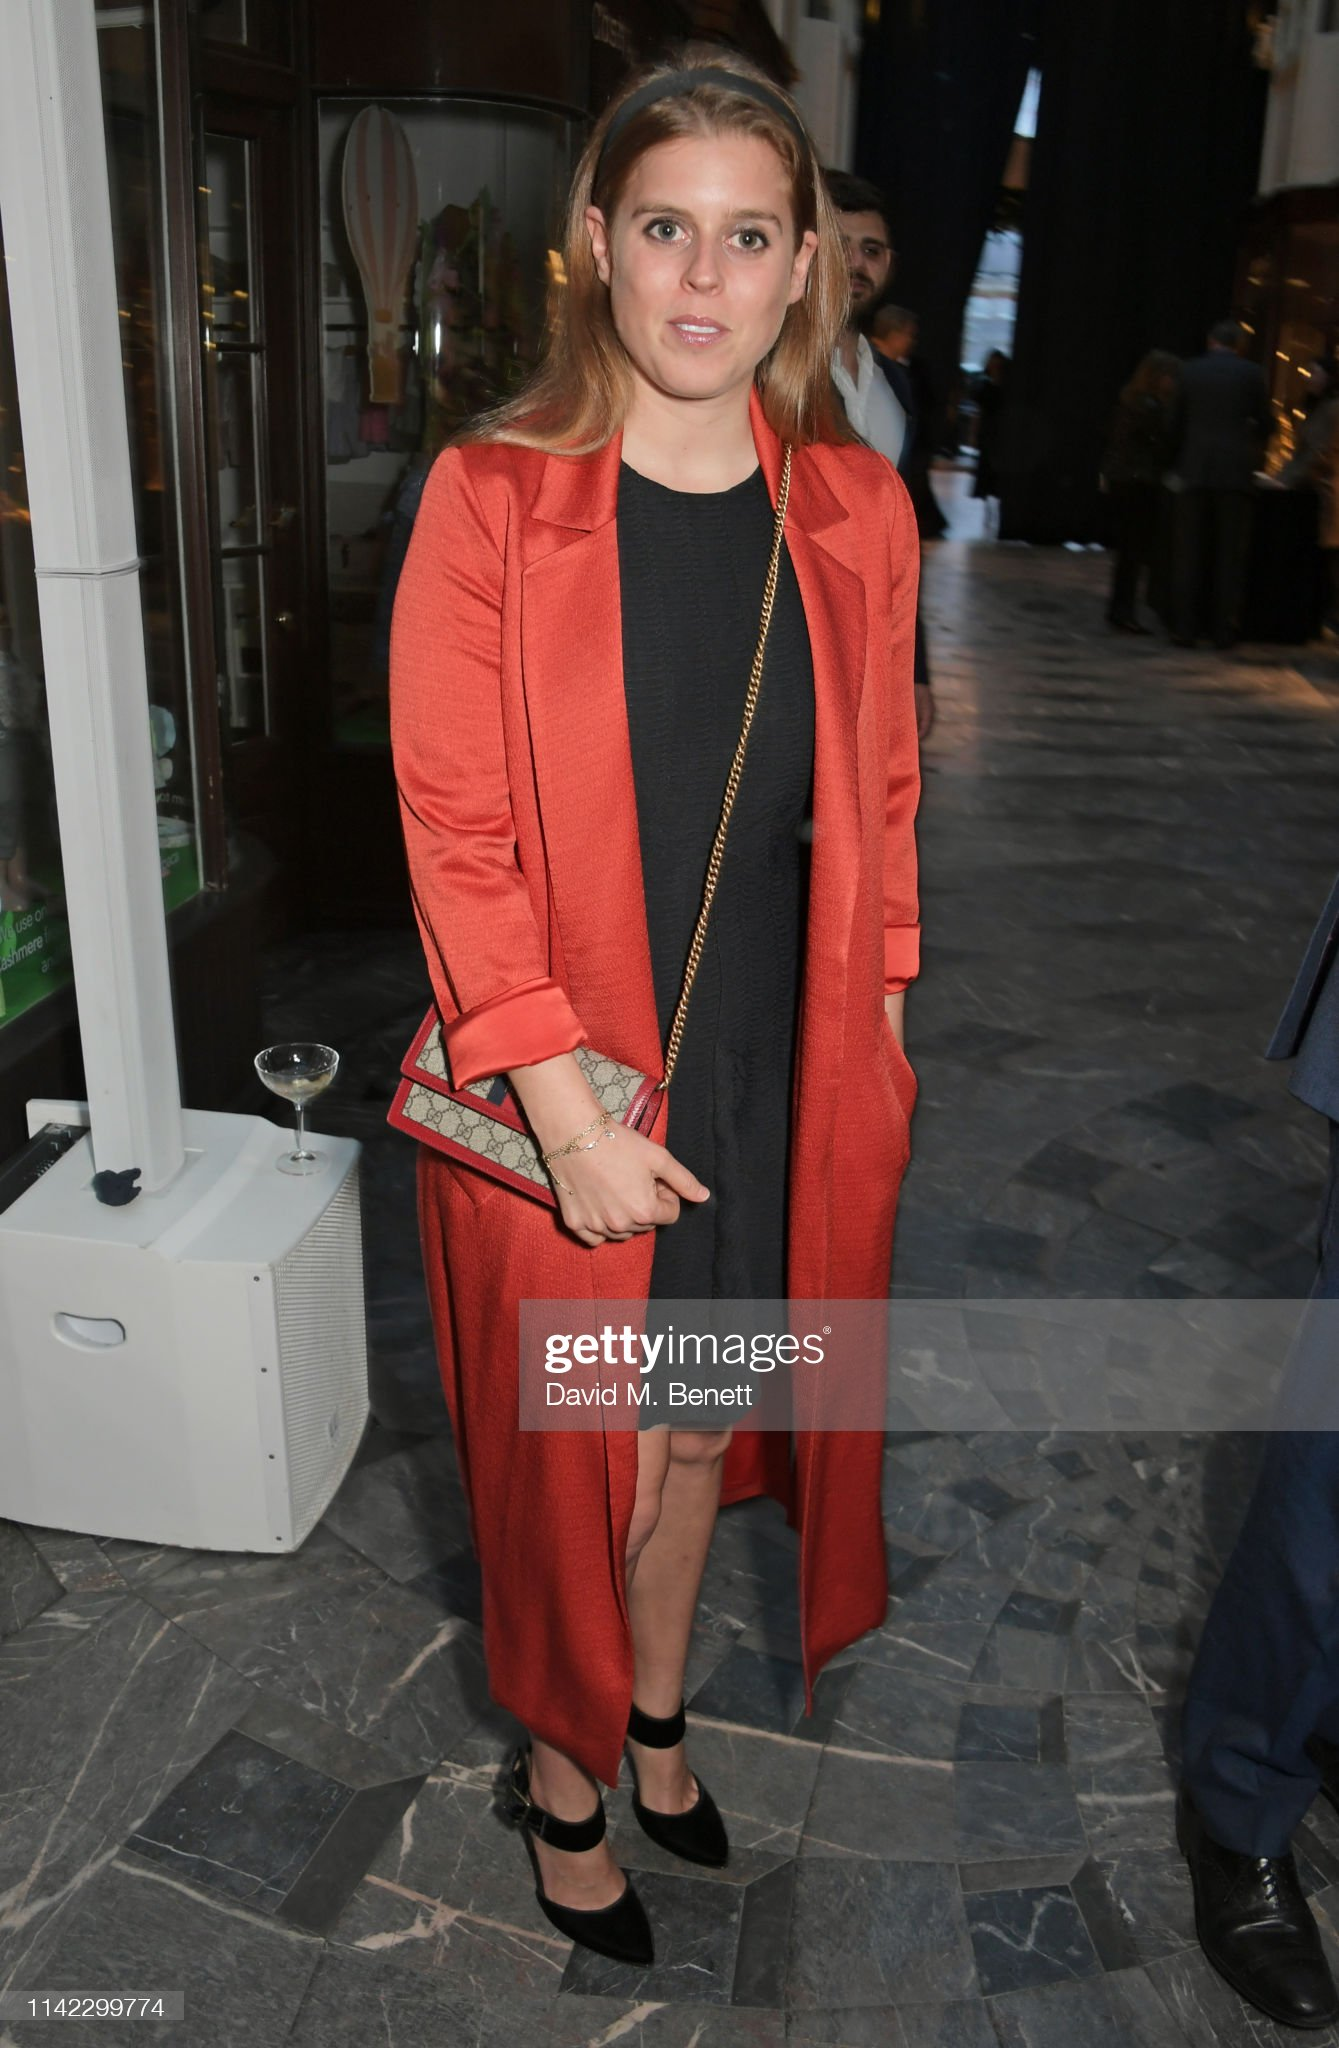 https://media.gettyimages.com/photos/princess-beatrice-of-york-attends-the-burlington-arcade-200th-dinner-picture-id1142299774?s=2048x2048